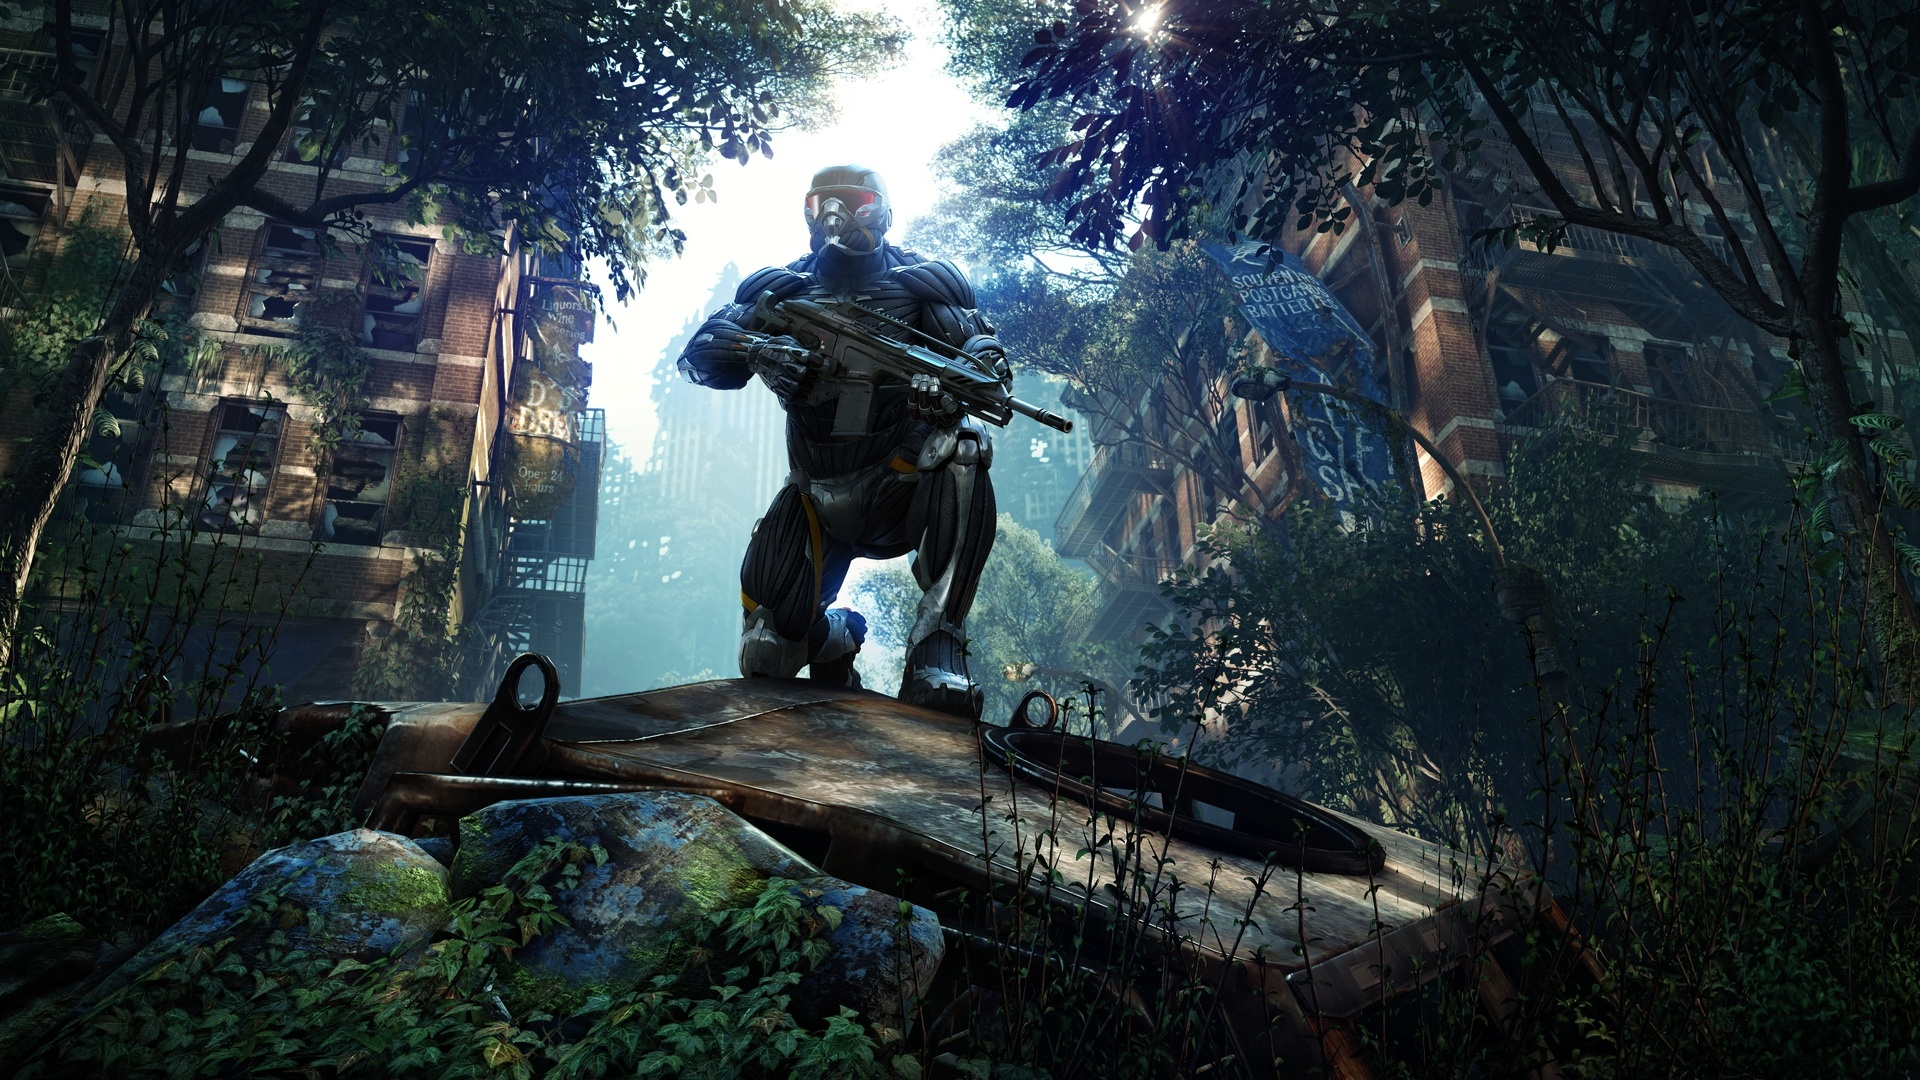 Fun In The World Of Games Hd Wallpapers: Crysis 3 Wallpaper 1920x1080